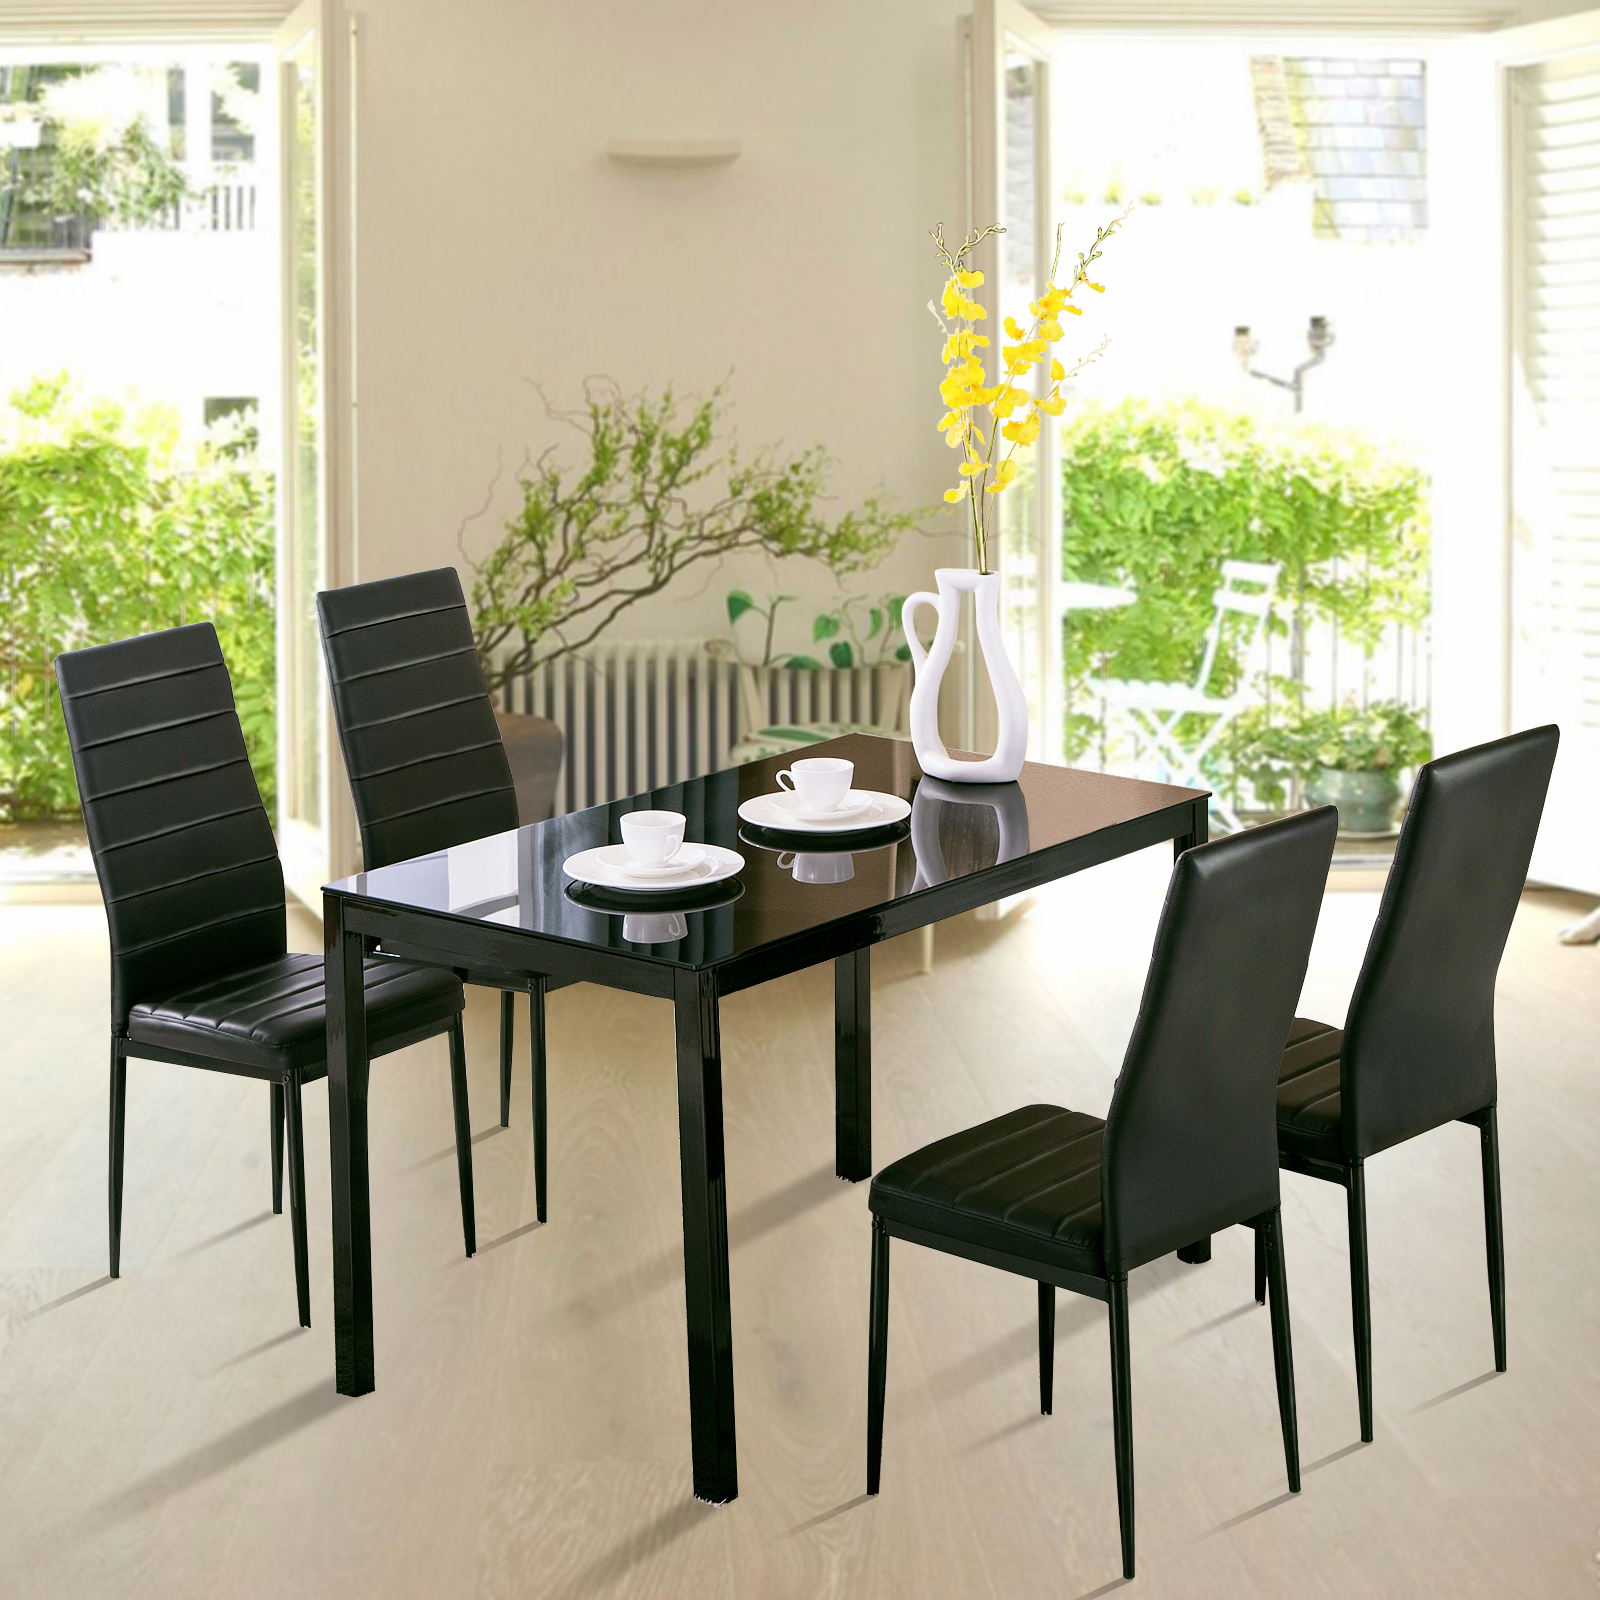 Glass Table Dining Set: 5 Piece Dining Table Set 4 Chairs Glass Metal Kitchen Room